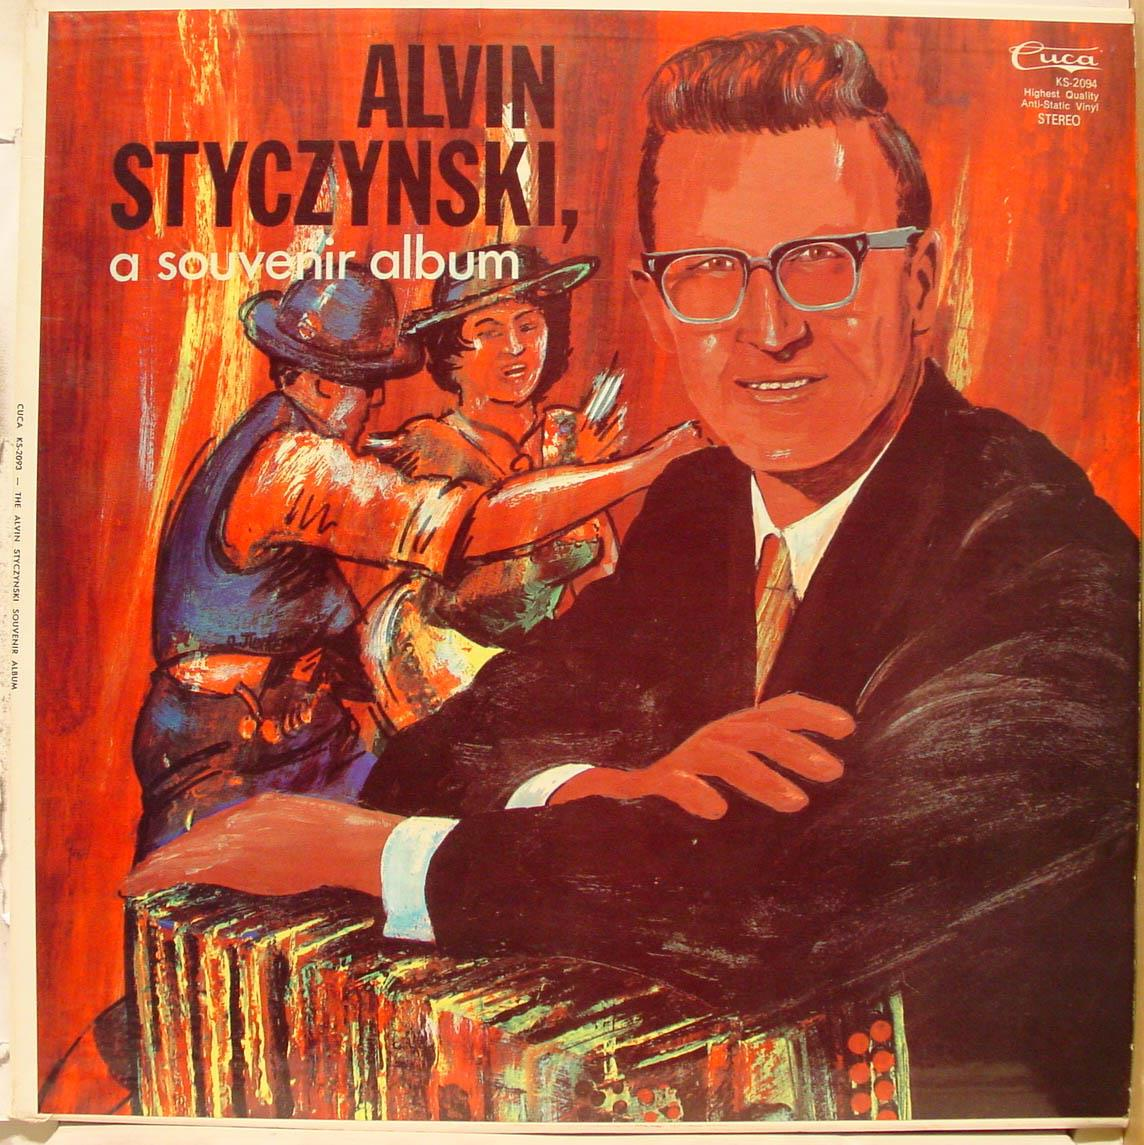 Alvin Styczynski More Polish At Its Best Lp Ks 2017 Vg Vinyl Record Cuca